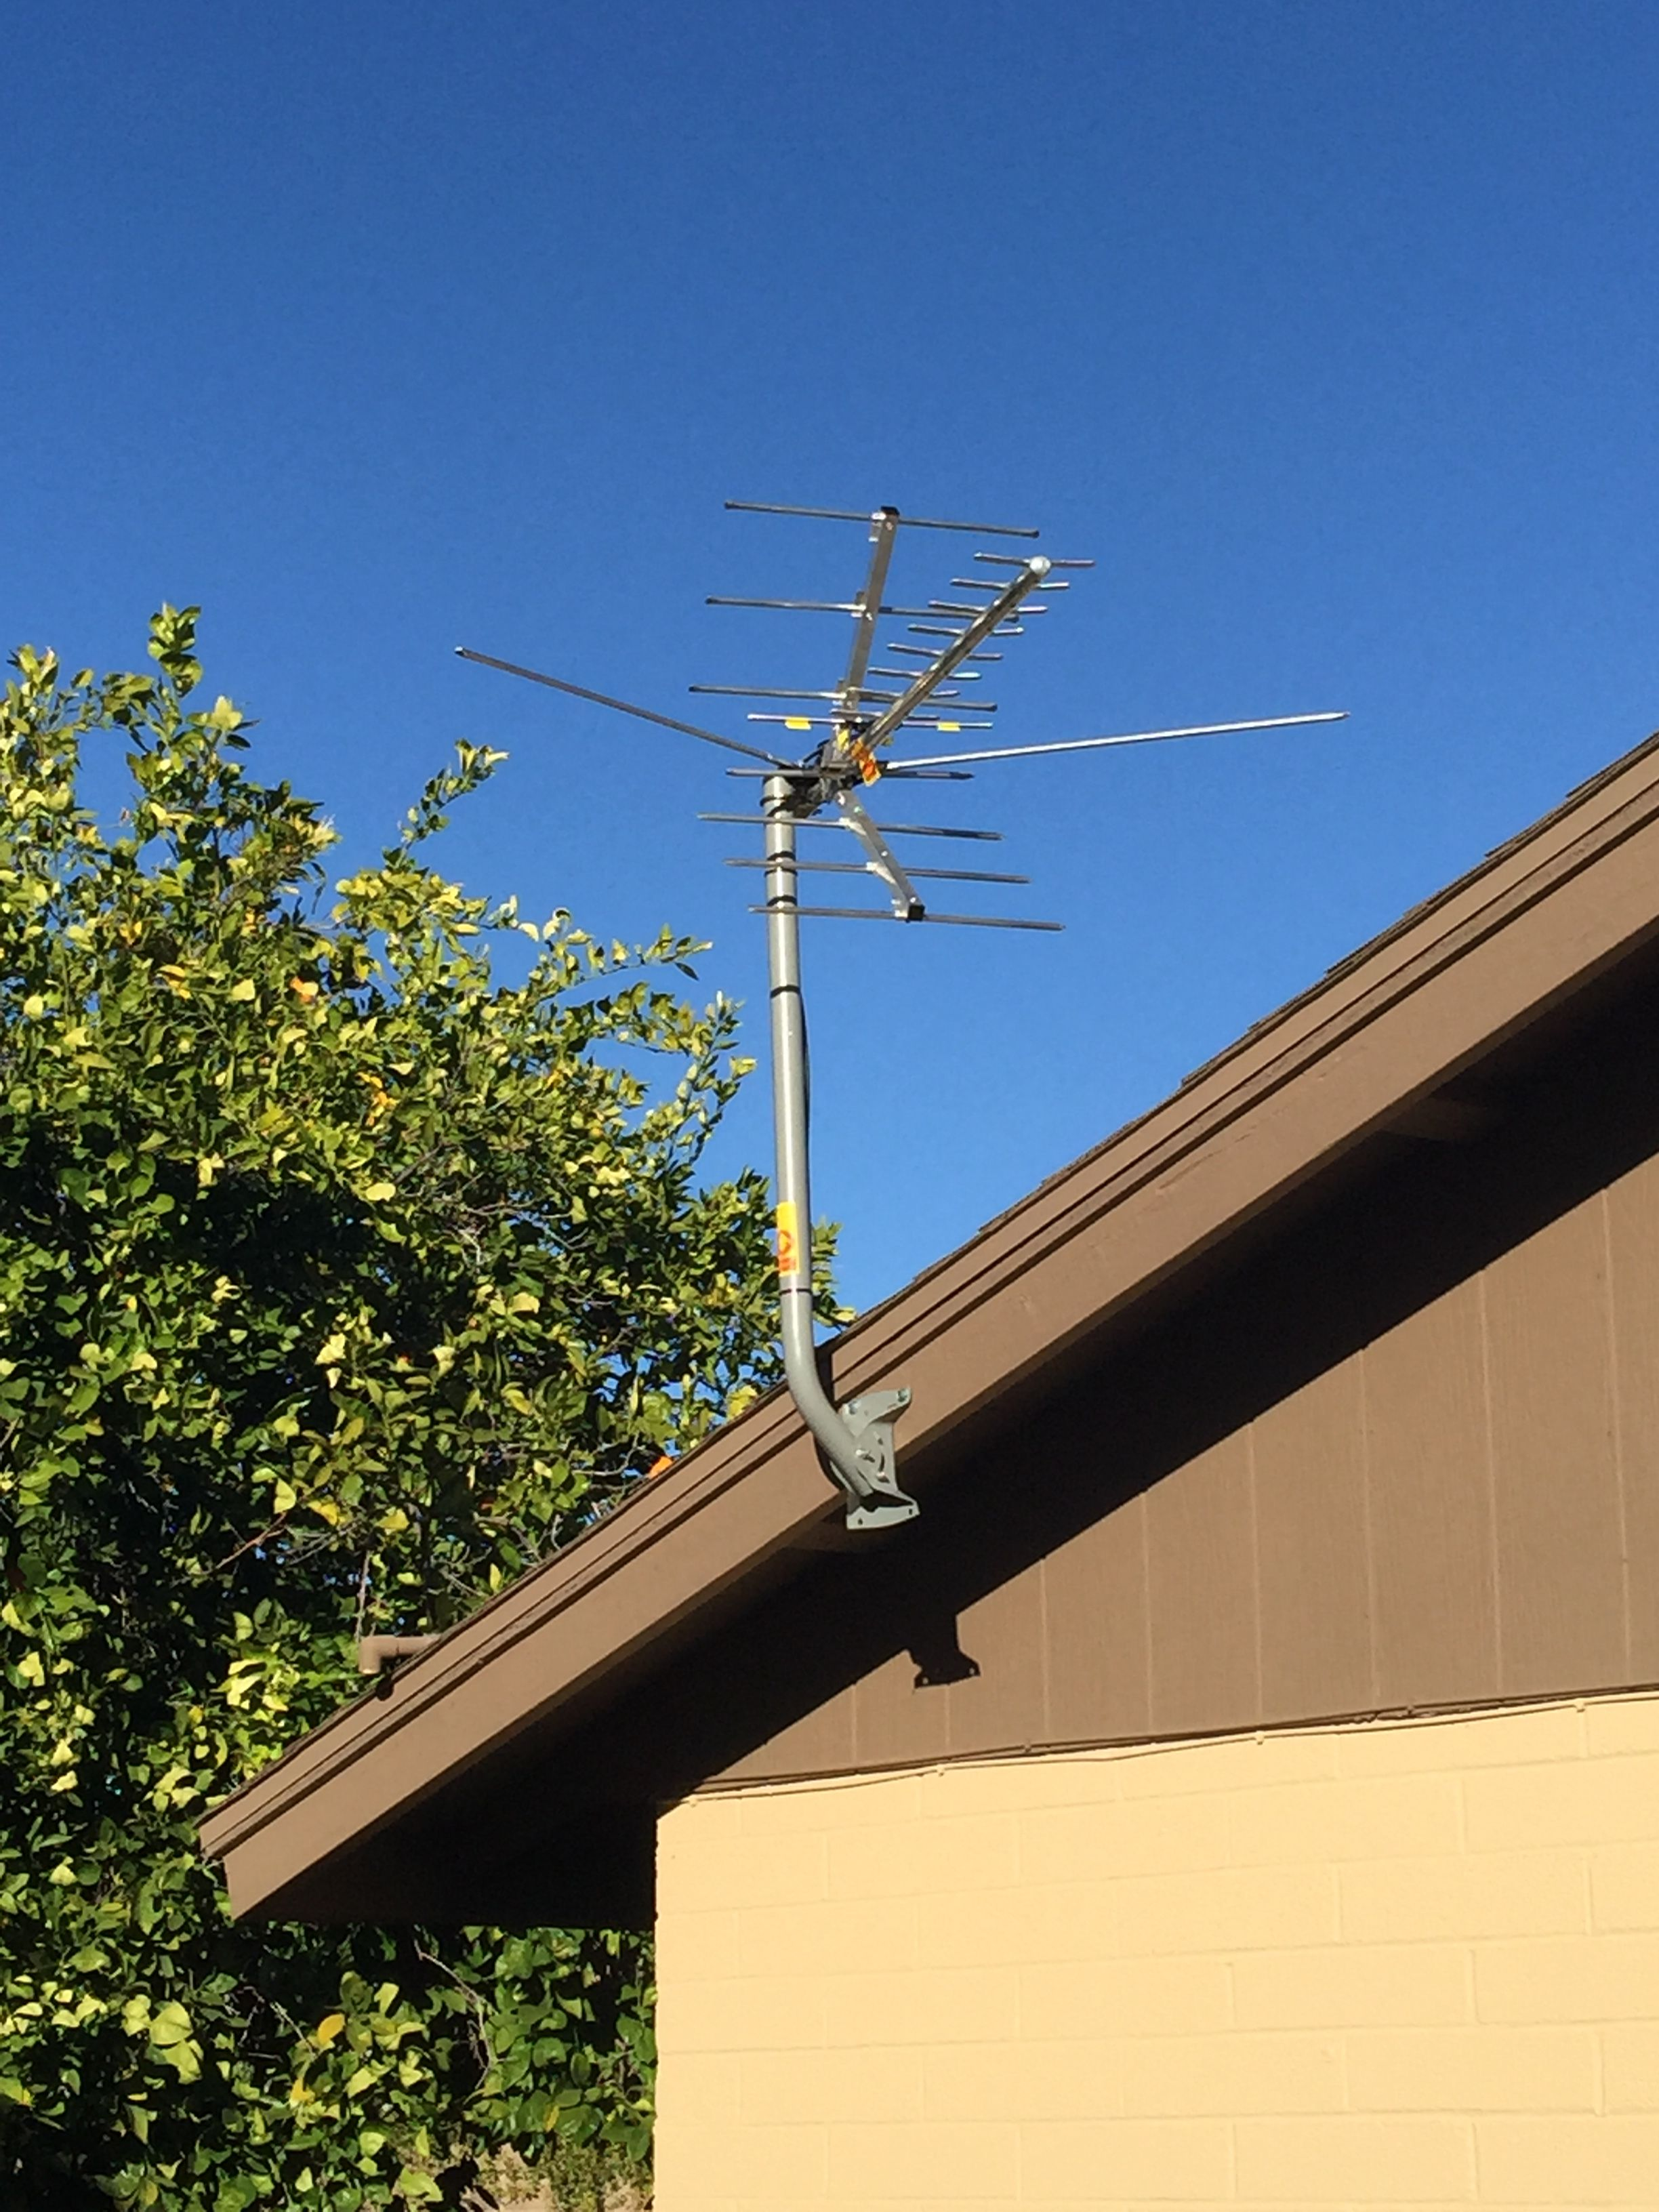 For Ease Of Installation Affix The Hdtv Antenna Mount To The Eve Of Roof On The Side Where The D Mark Wire Box Is Located Fr Hdtv Antenna Installation Hdtv